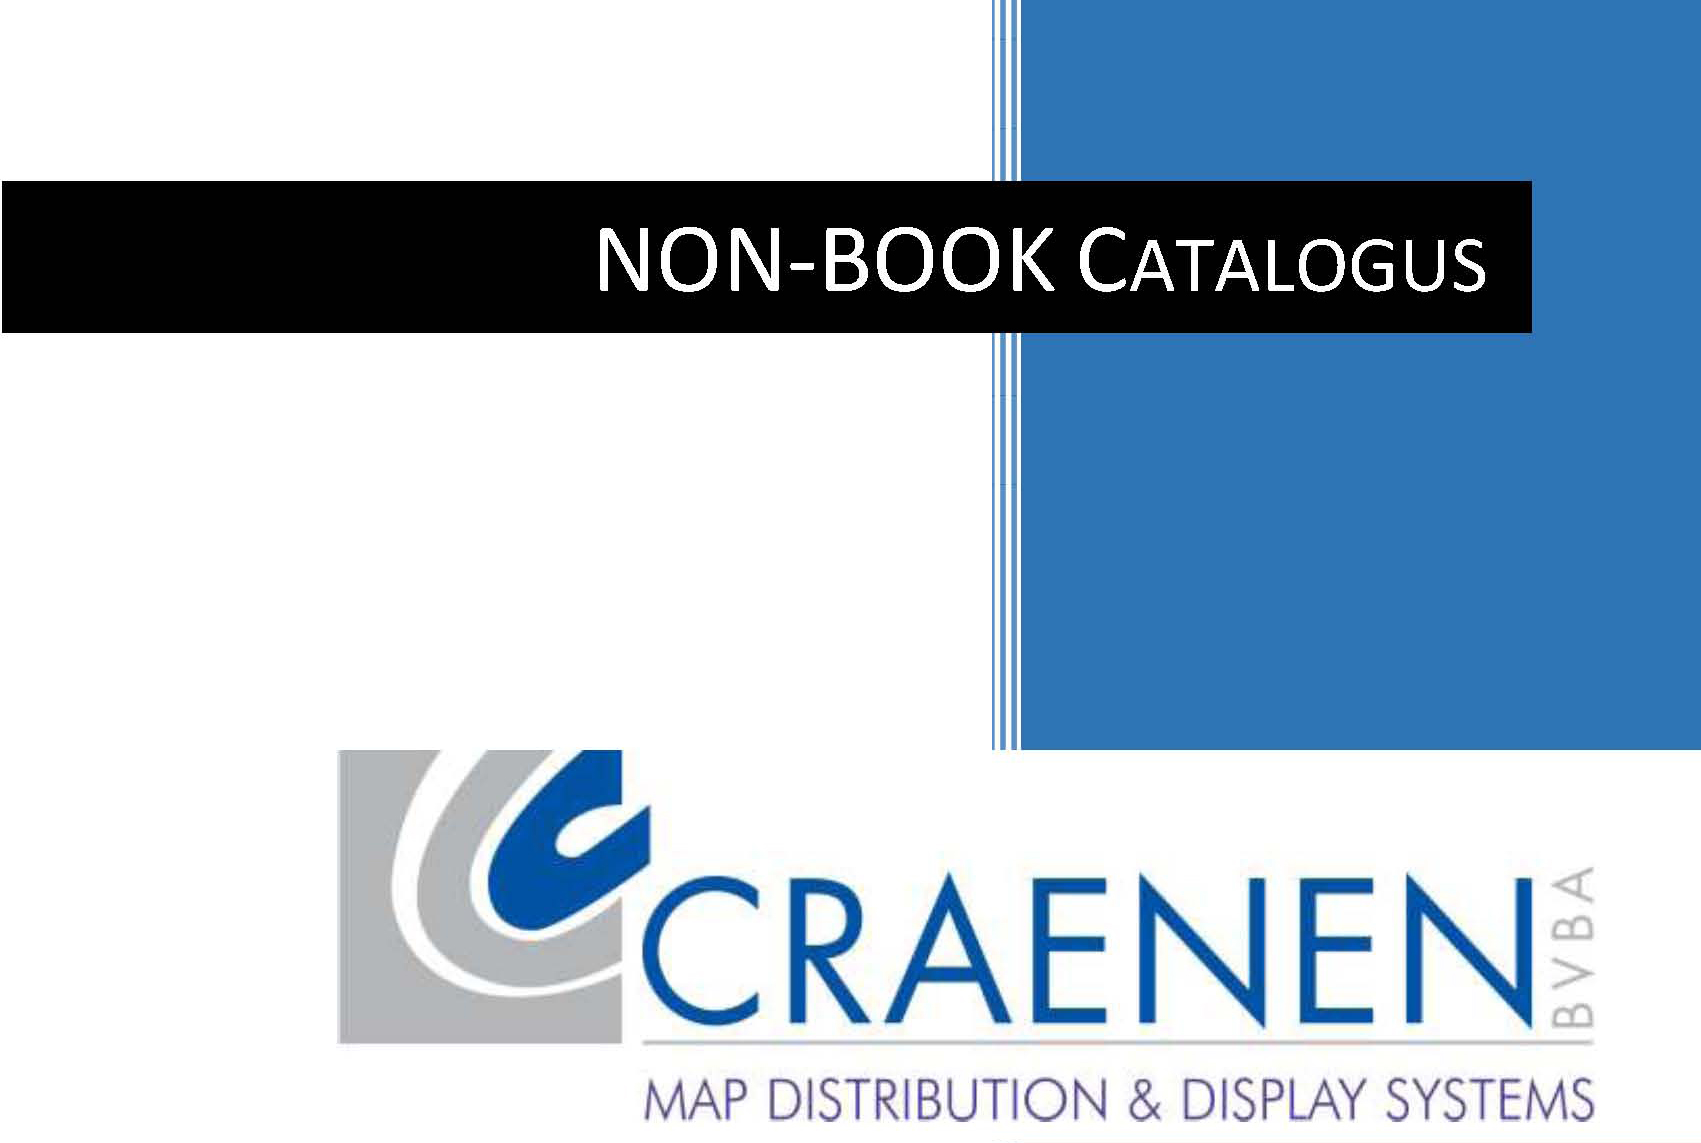 Non-Book Catalogus